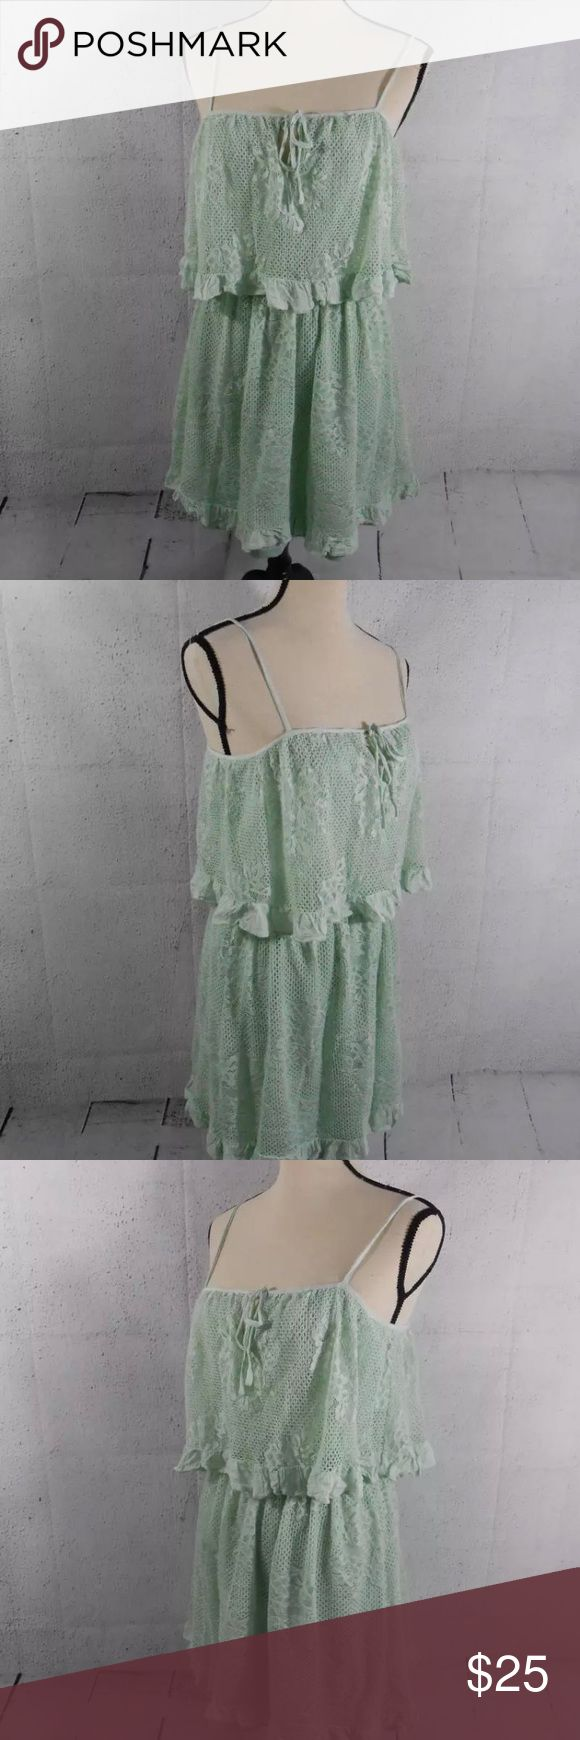 Francesca's Collection Boutique Lace Green Dress Francescas Collection Boutique Mi Ami Miami Womens Small Ruffle Eyelet Green Sleeveless Dress  Worn once to a brunch Francesca's Collections Dresses Mini